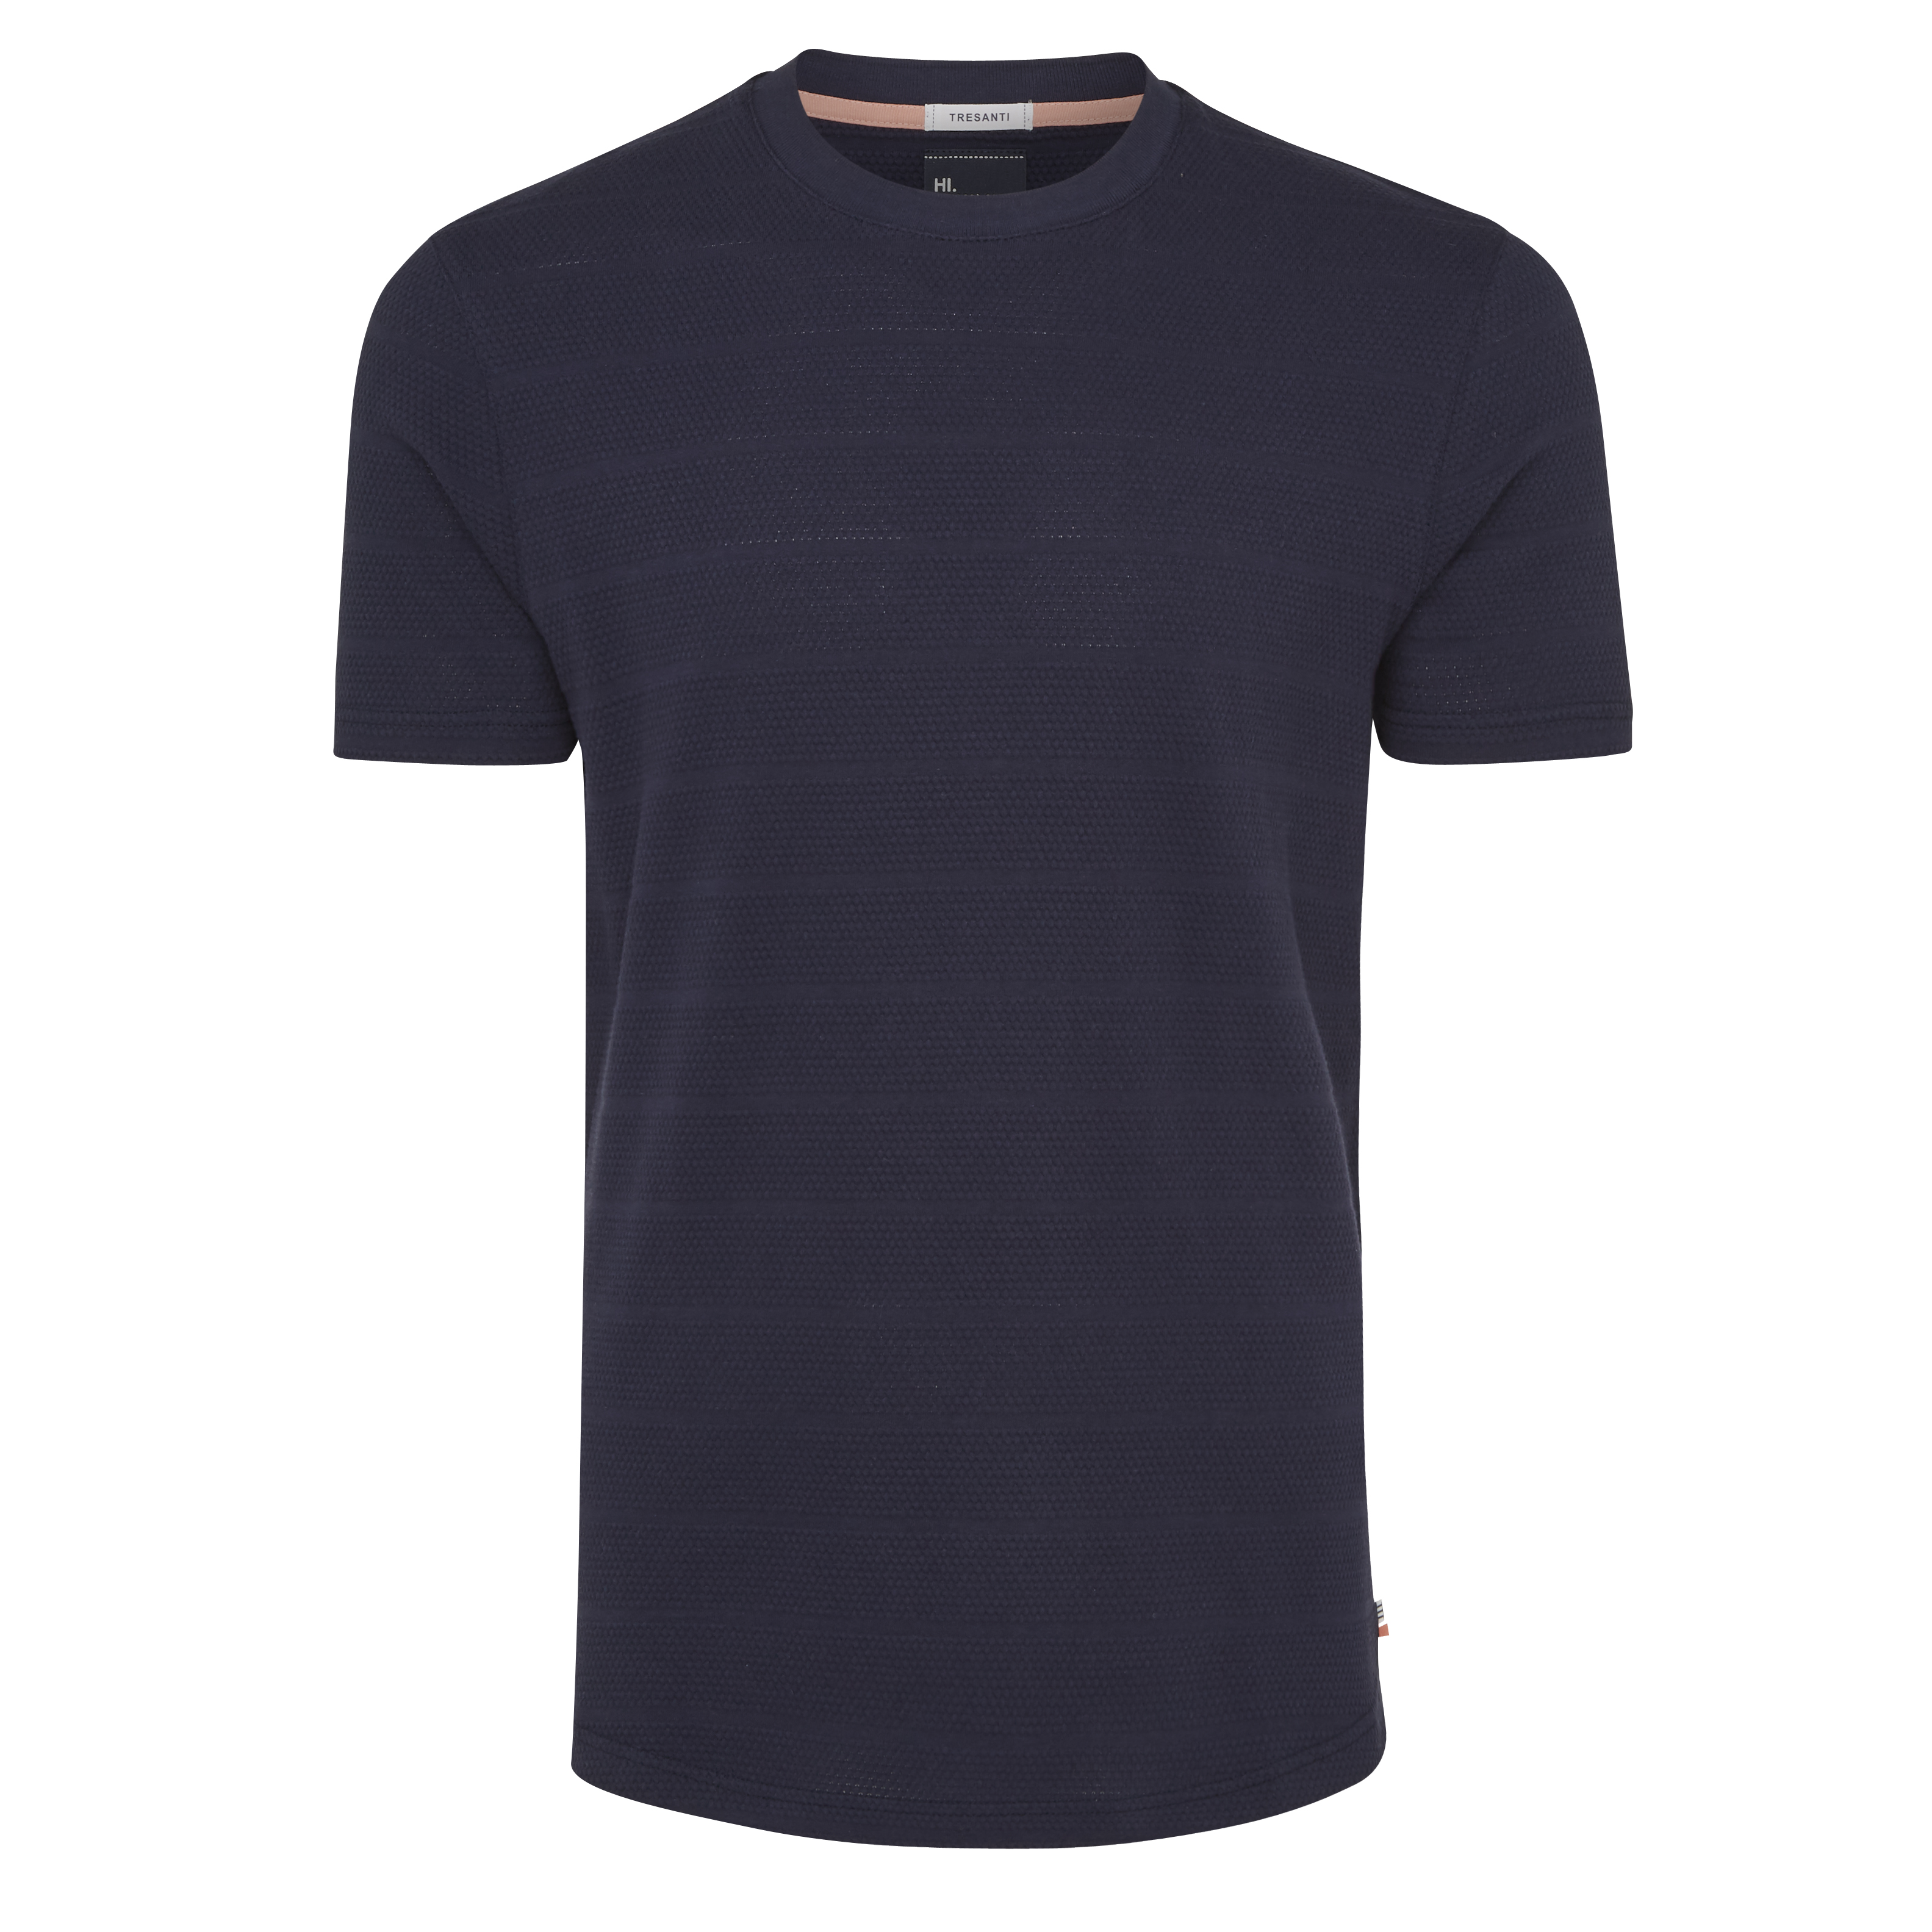 Tony | T-shirt structure navy